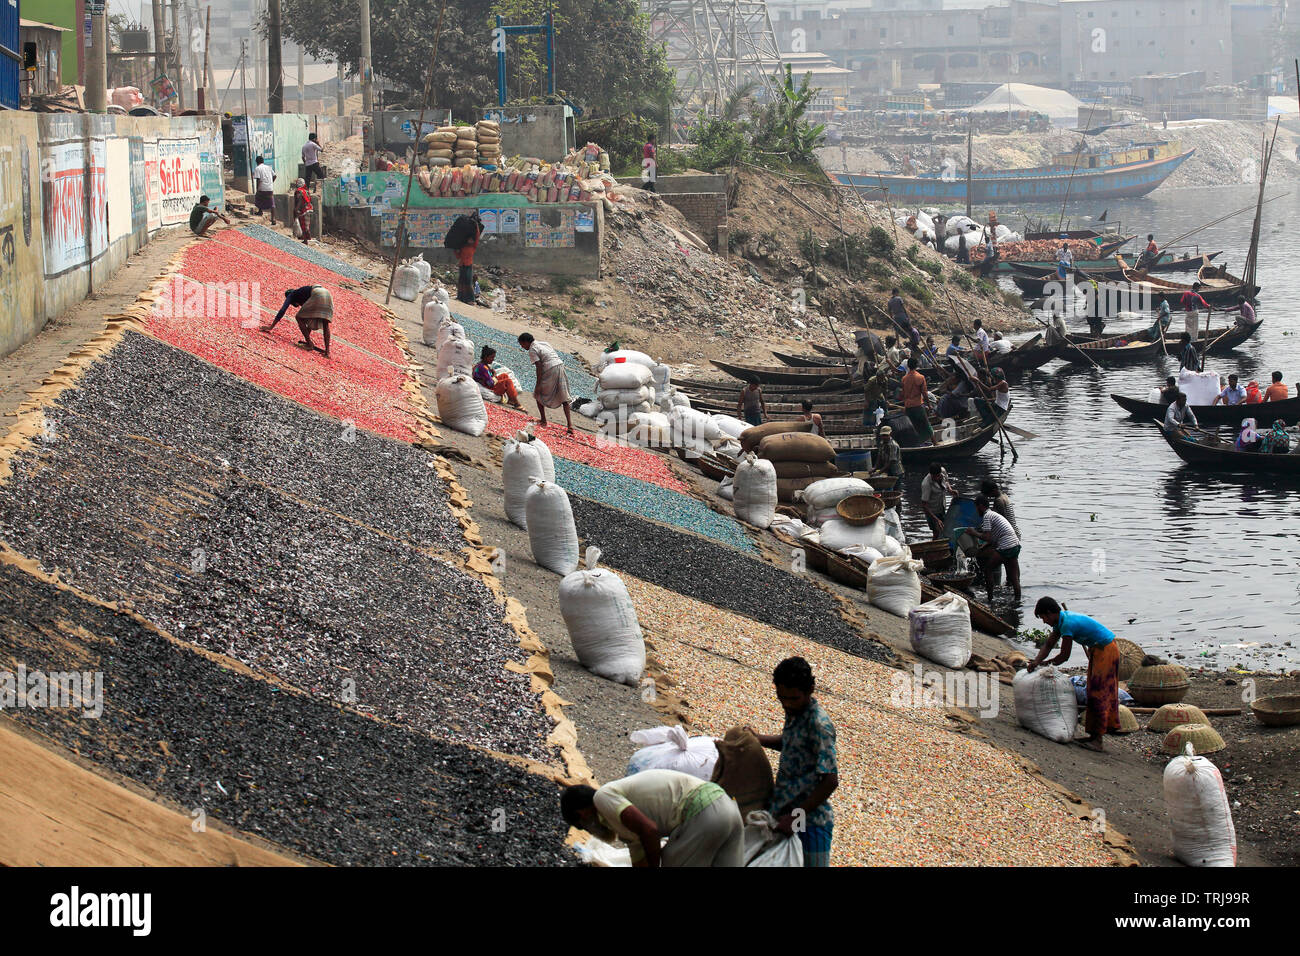 Recycled plastic chips drying on the bank of the Buriganga River in Dhaka, Bangladesh. - Stock Image